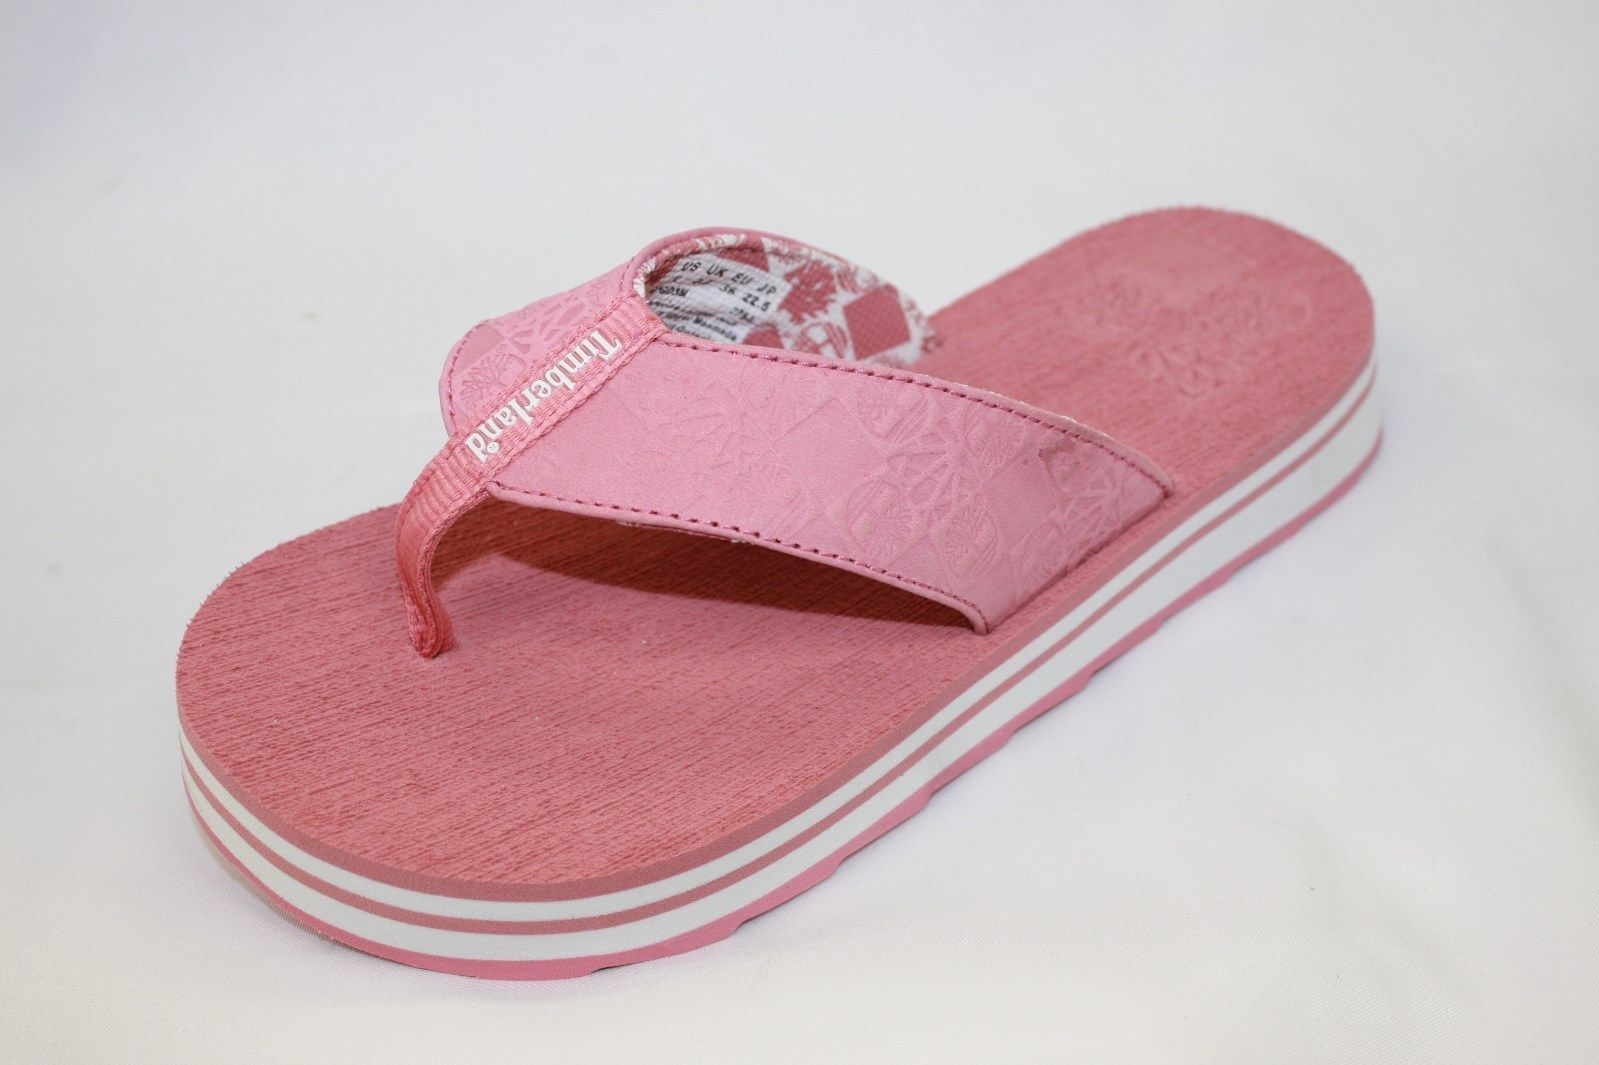 Primary image for Women's Timberland Pink Flip Flops